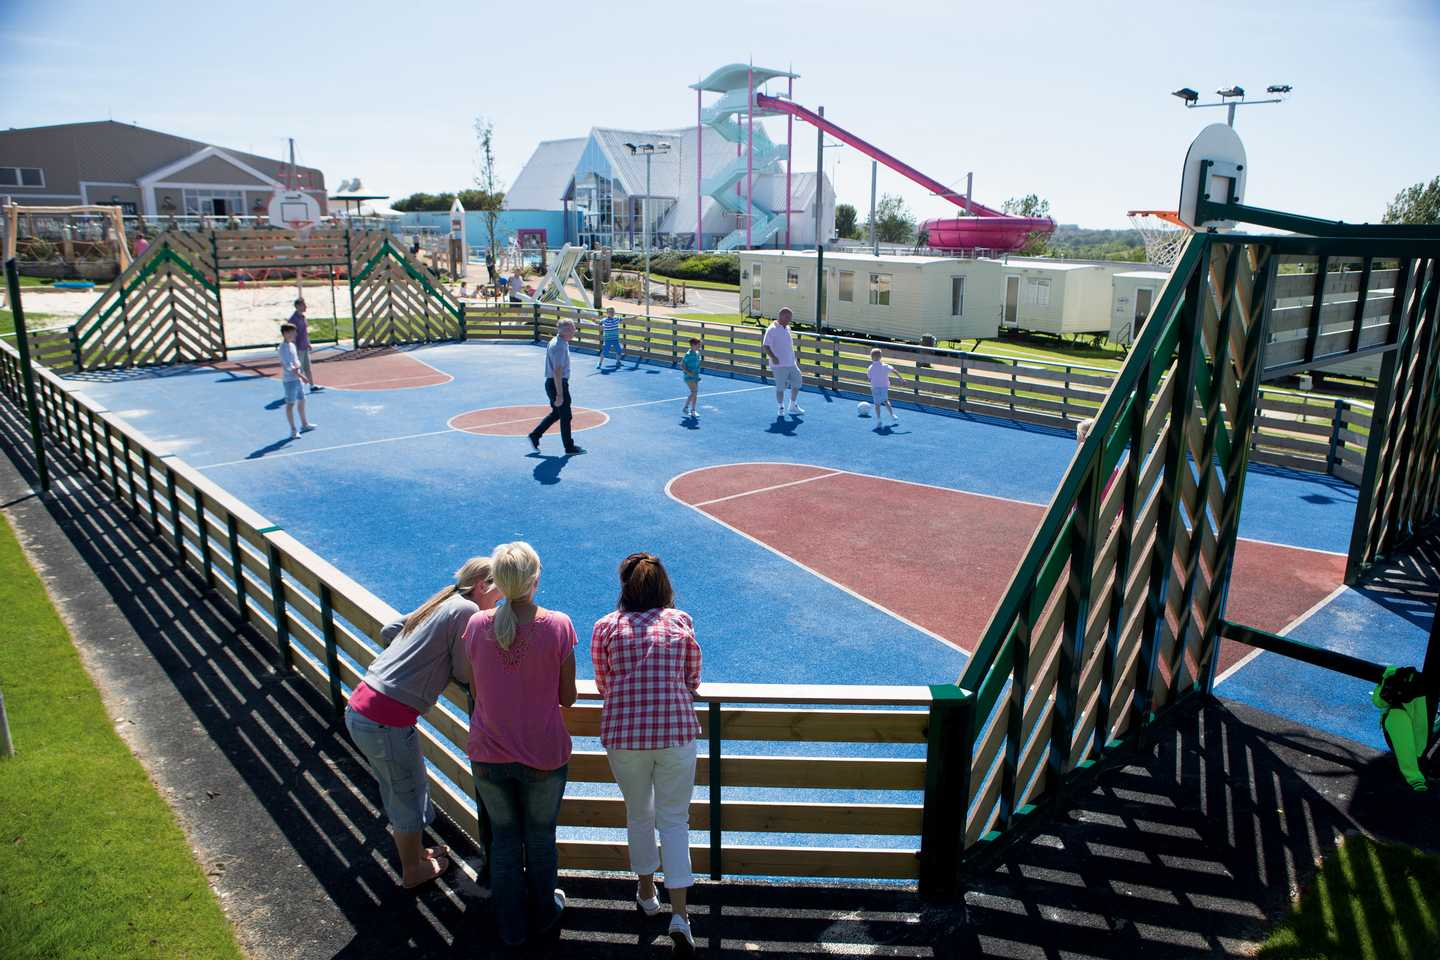 Guests playing ball games on the sports court